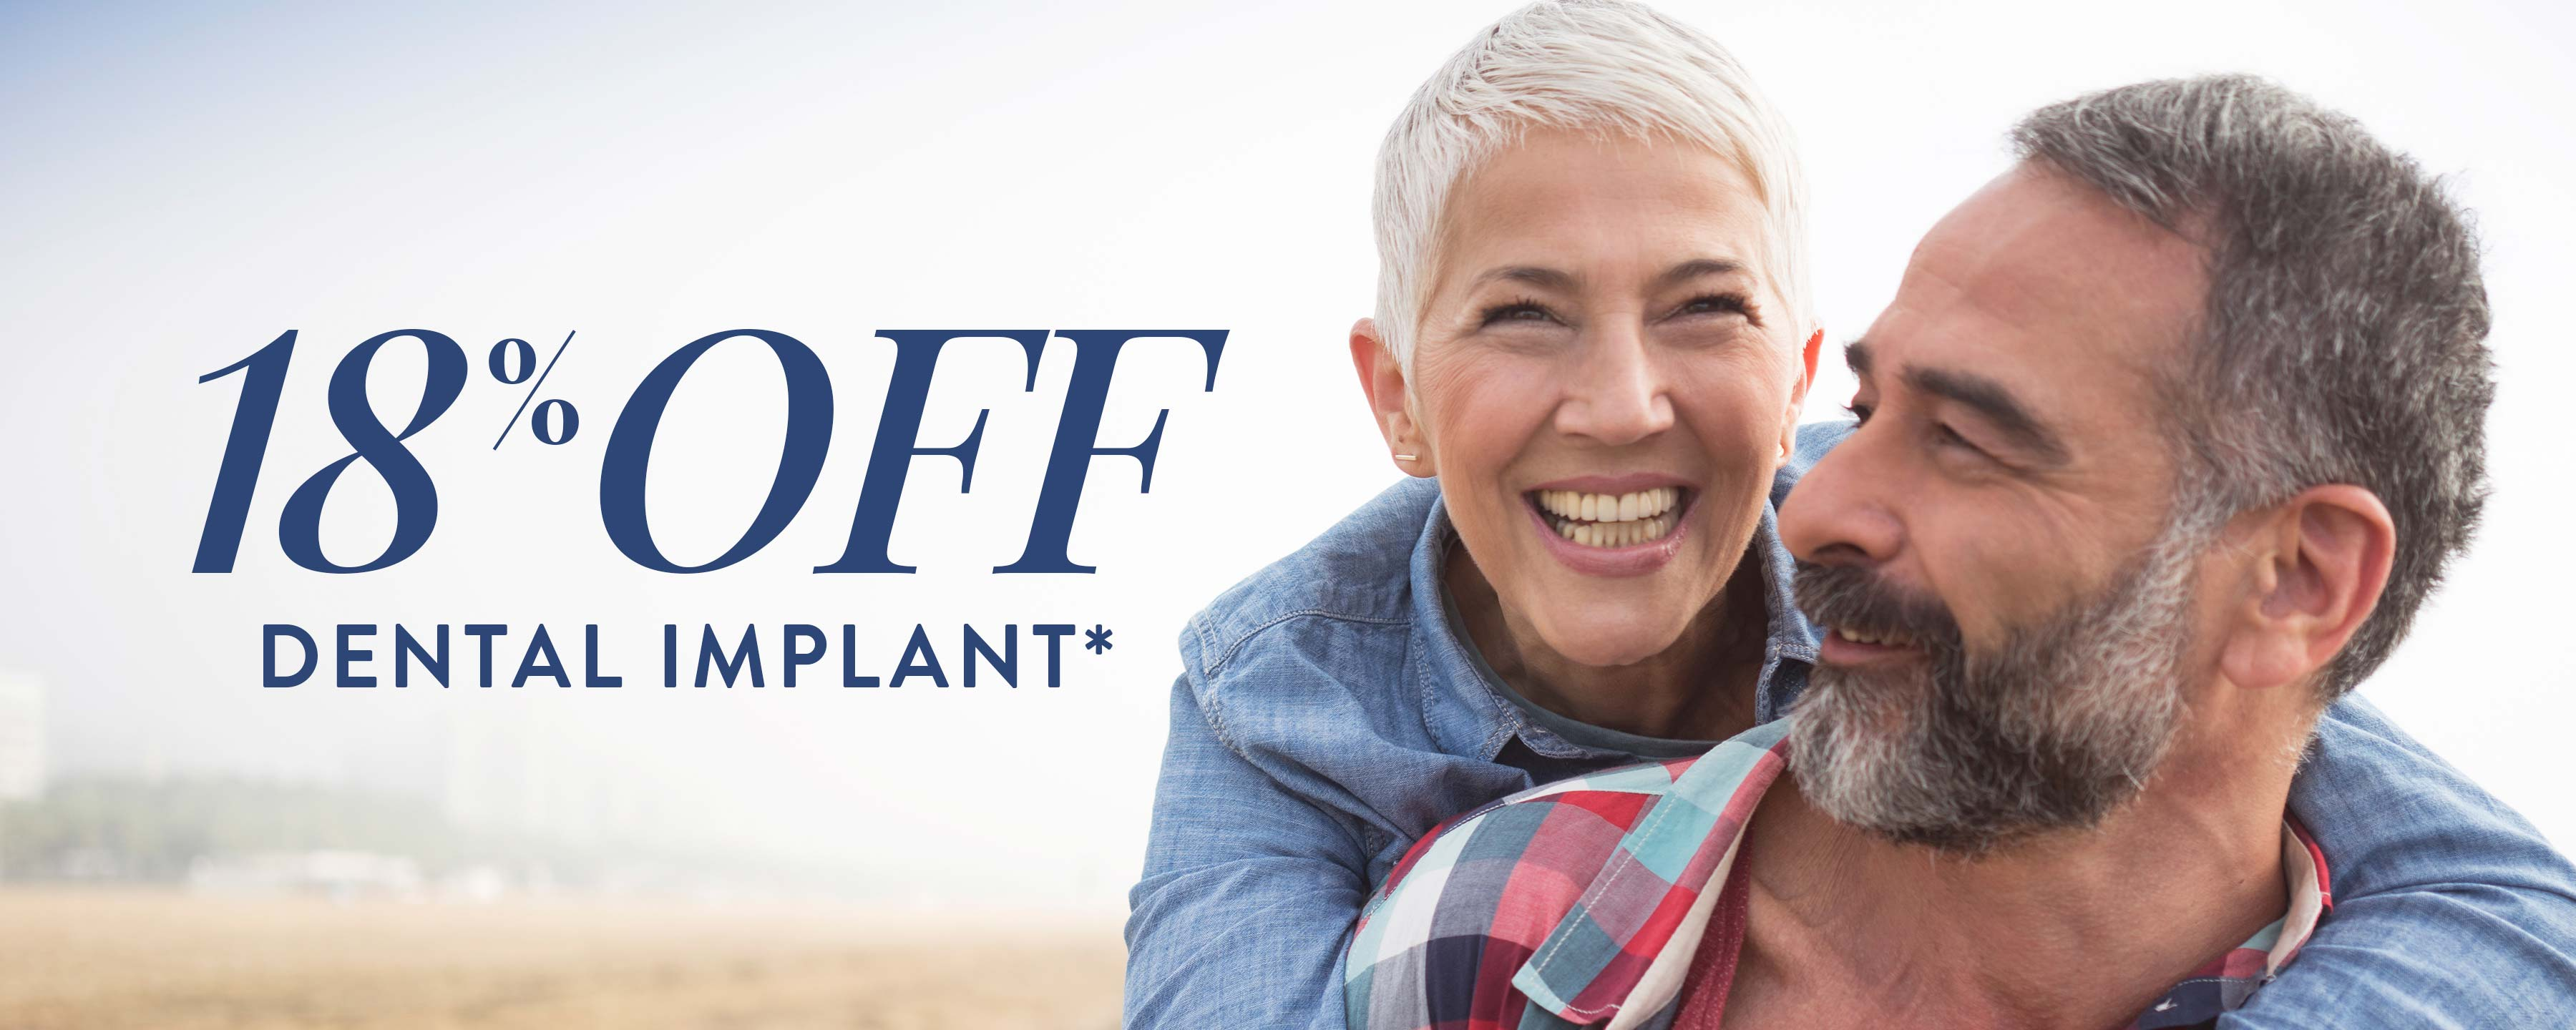 18% Off Dental Implant Treatment*